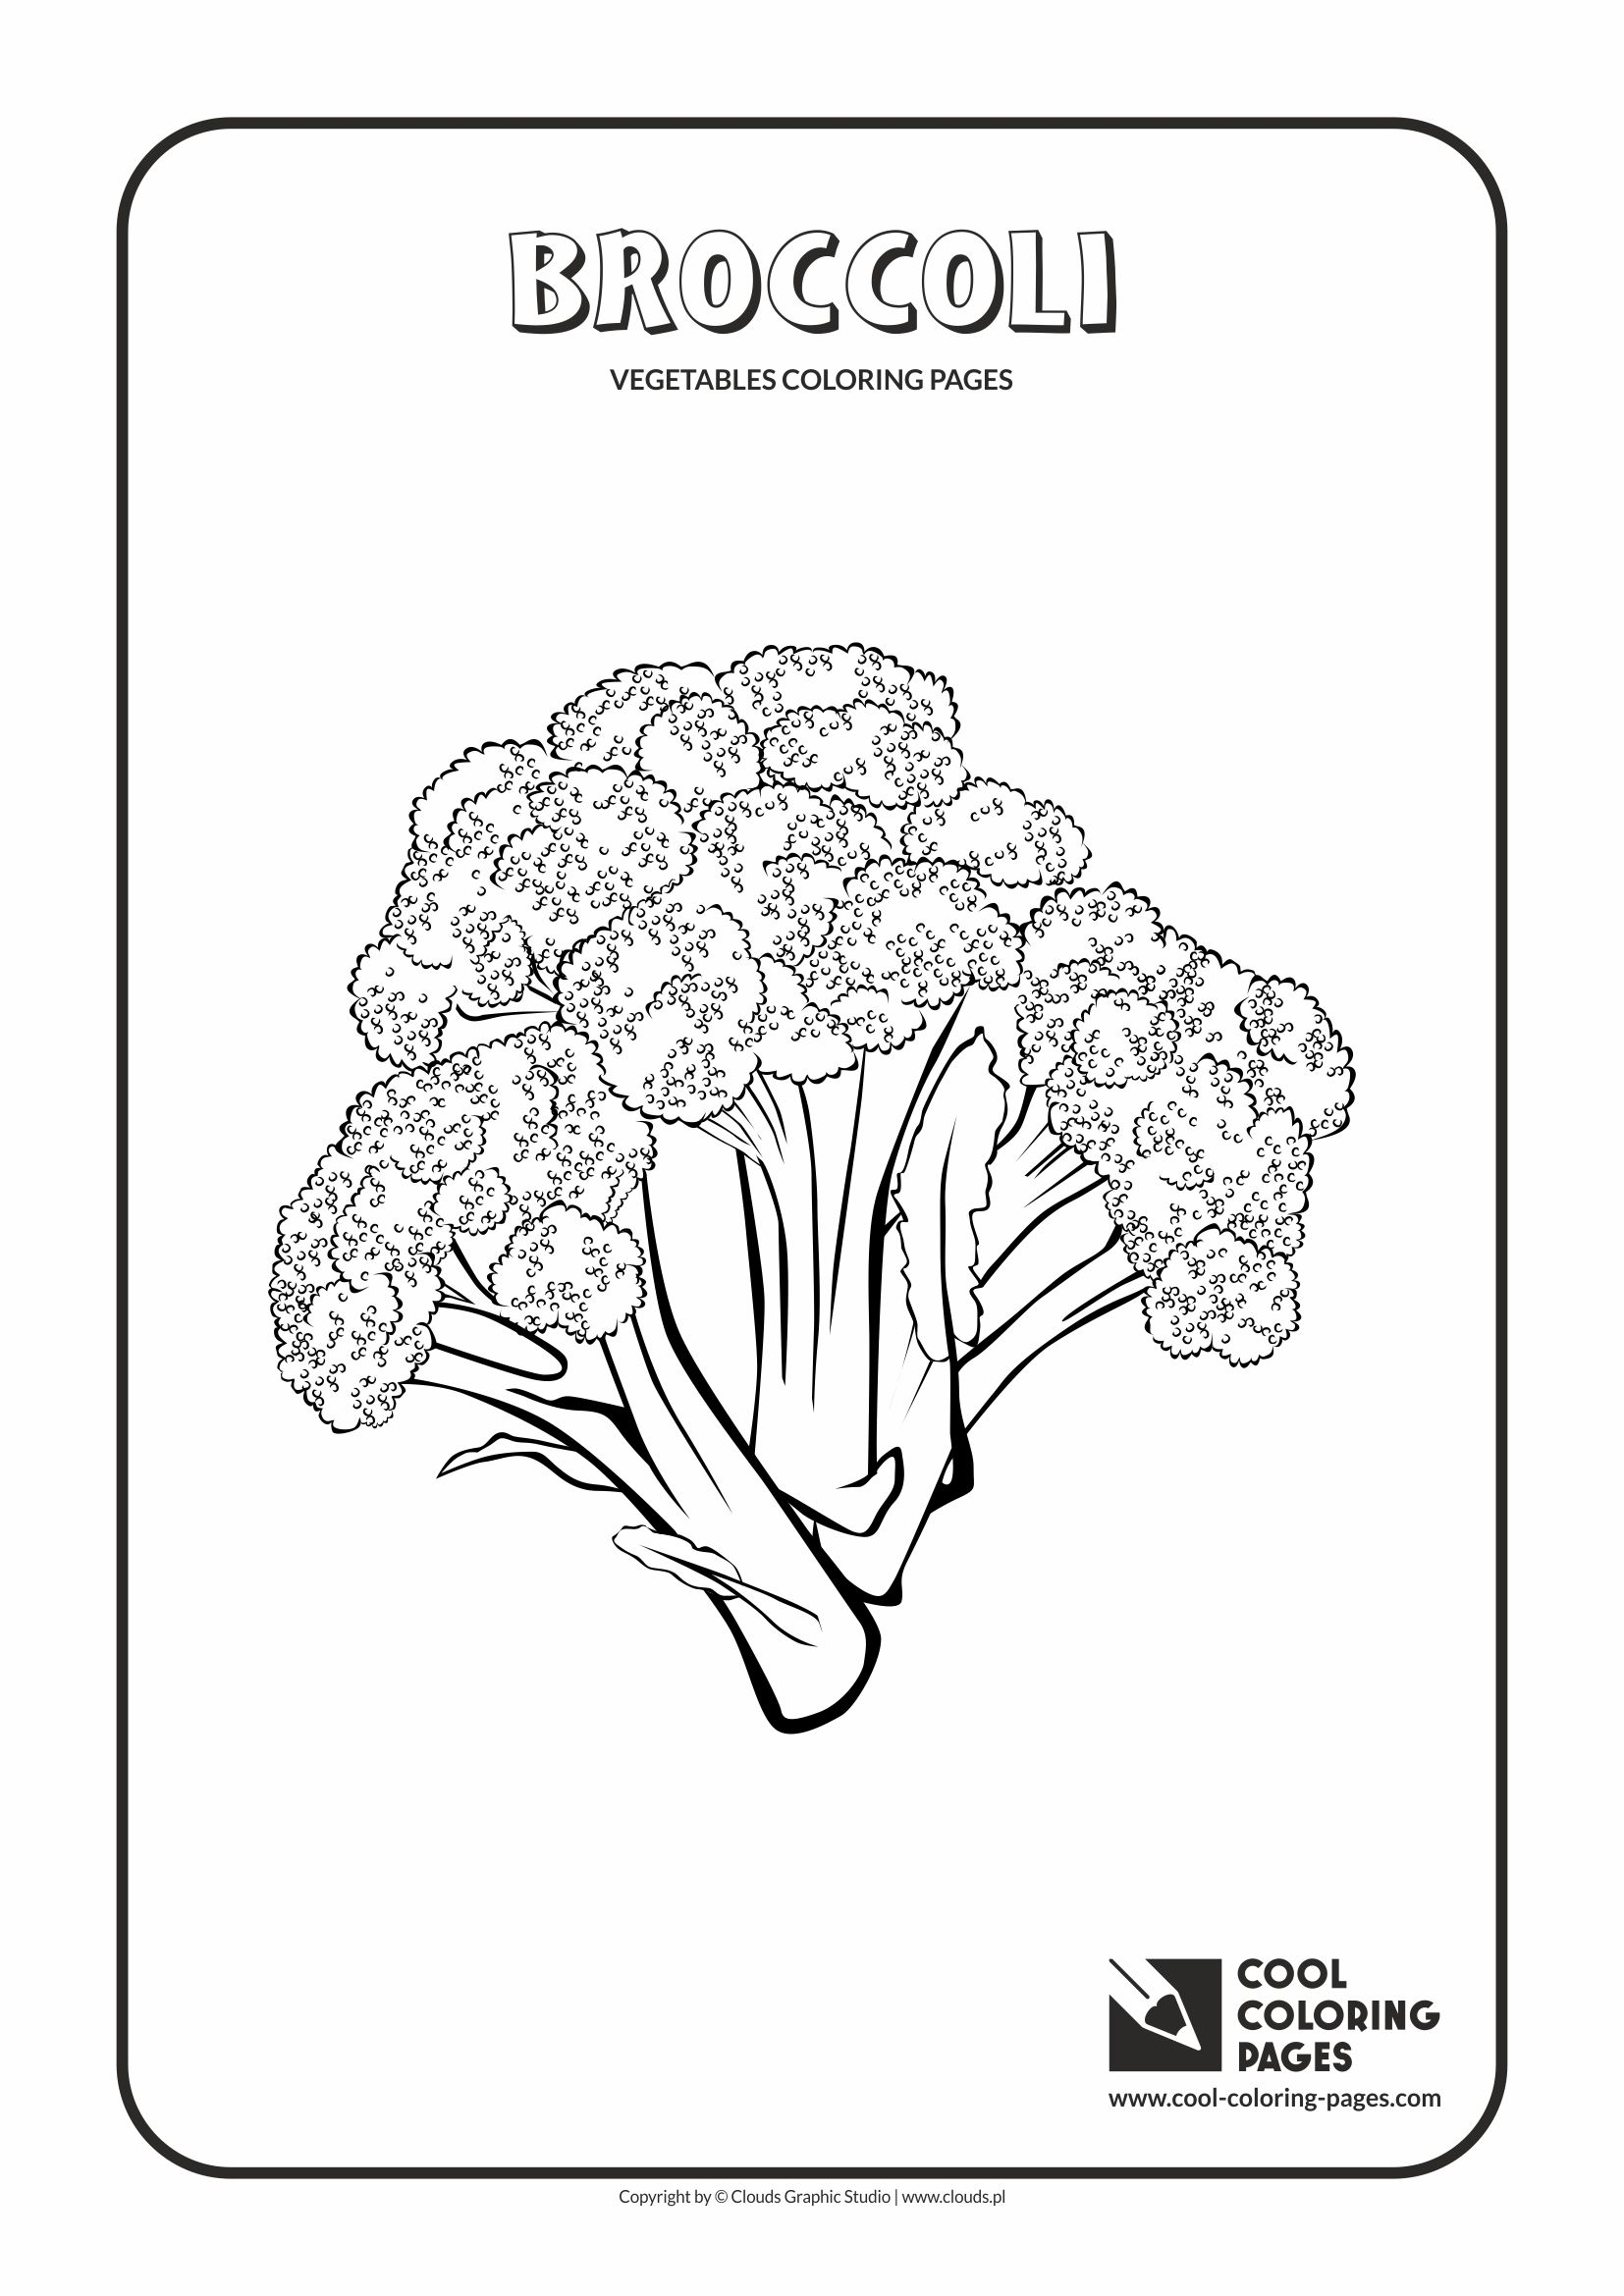 Cool Coloring Pages - Plants / Broccoli / Coloring page with broccoli